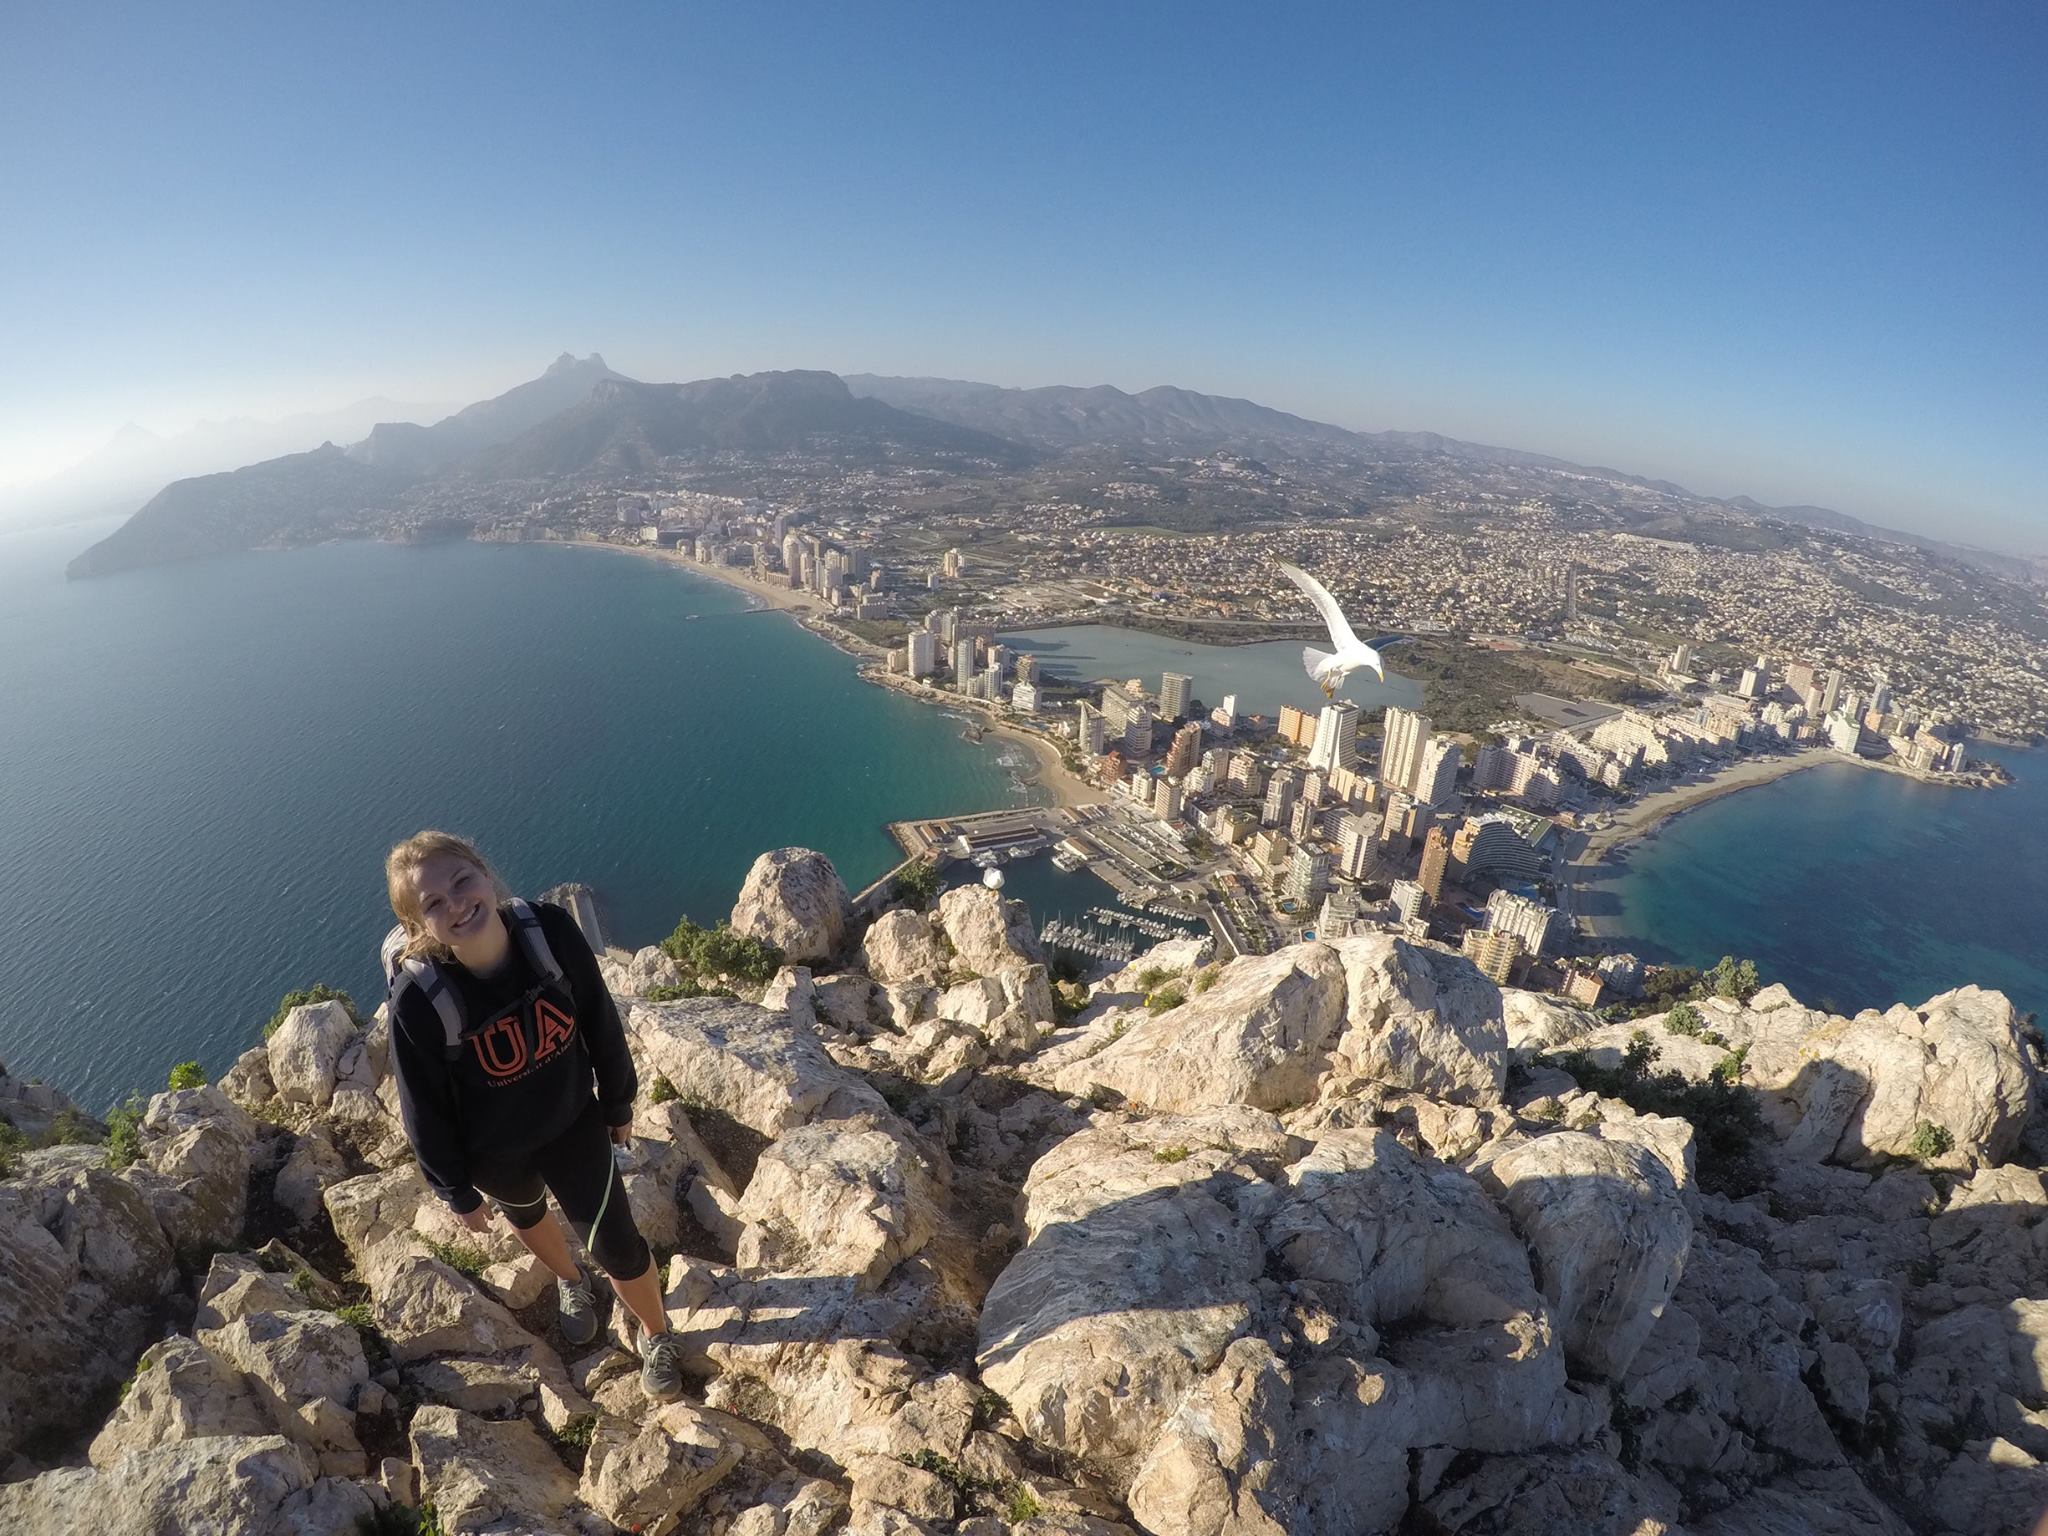 Summer Program - Spanish | Spanish Studies Abroad: Summer Term in Alicante, Spain